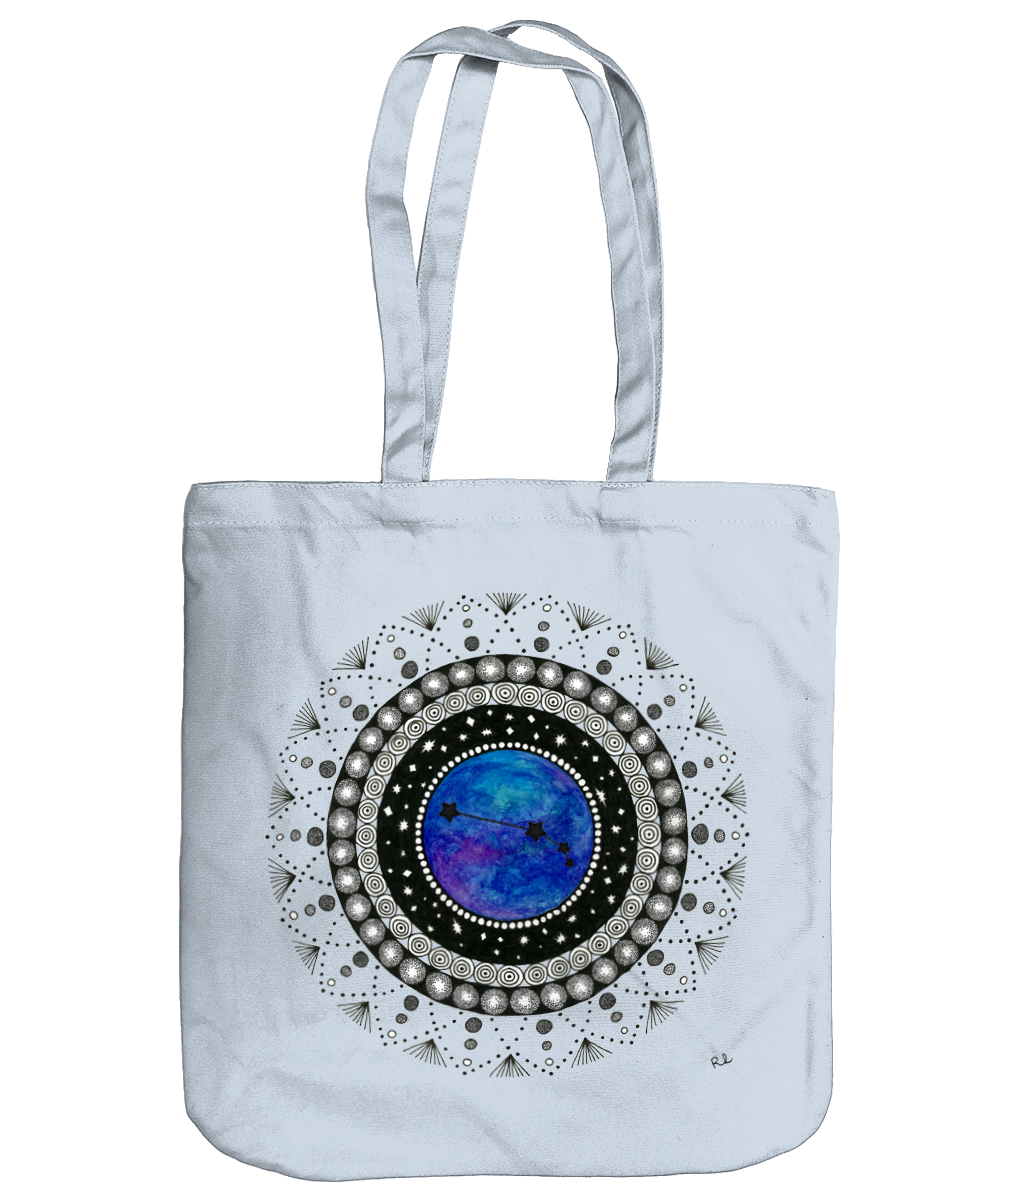 EarthAware Organic Tote 'Aries' - Rebecca Leah Designs